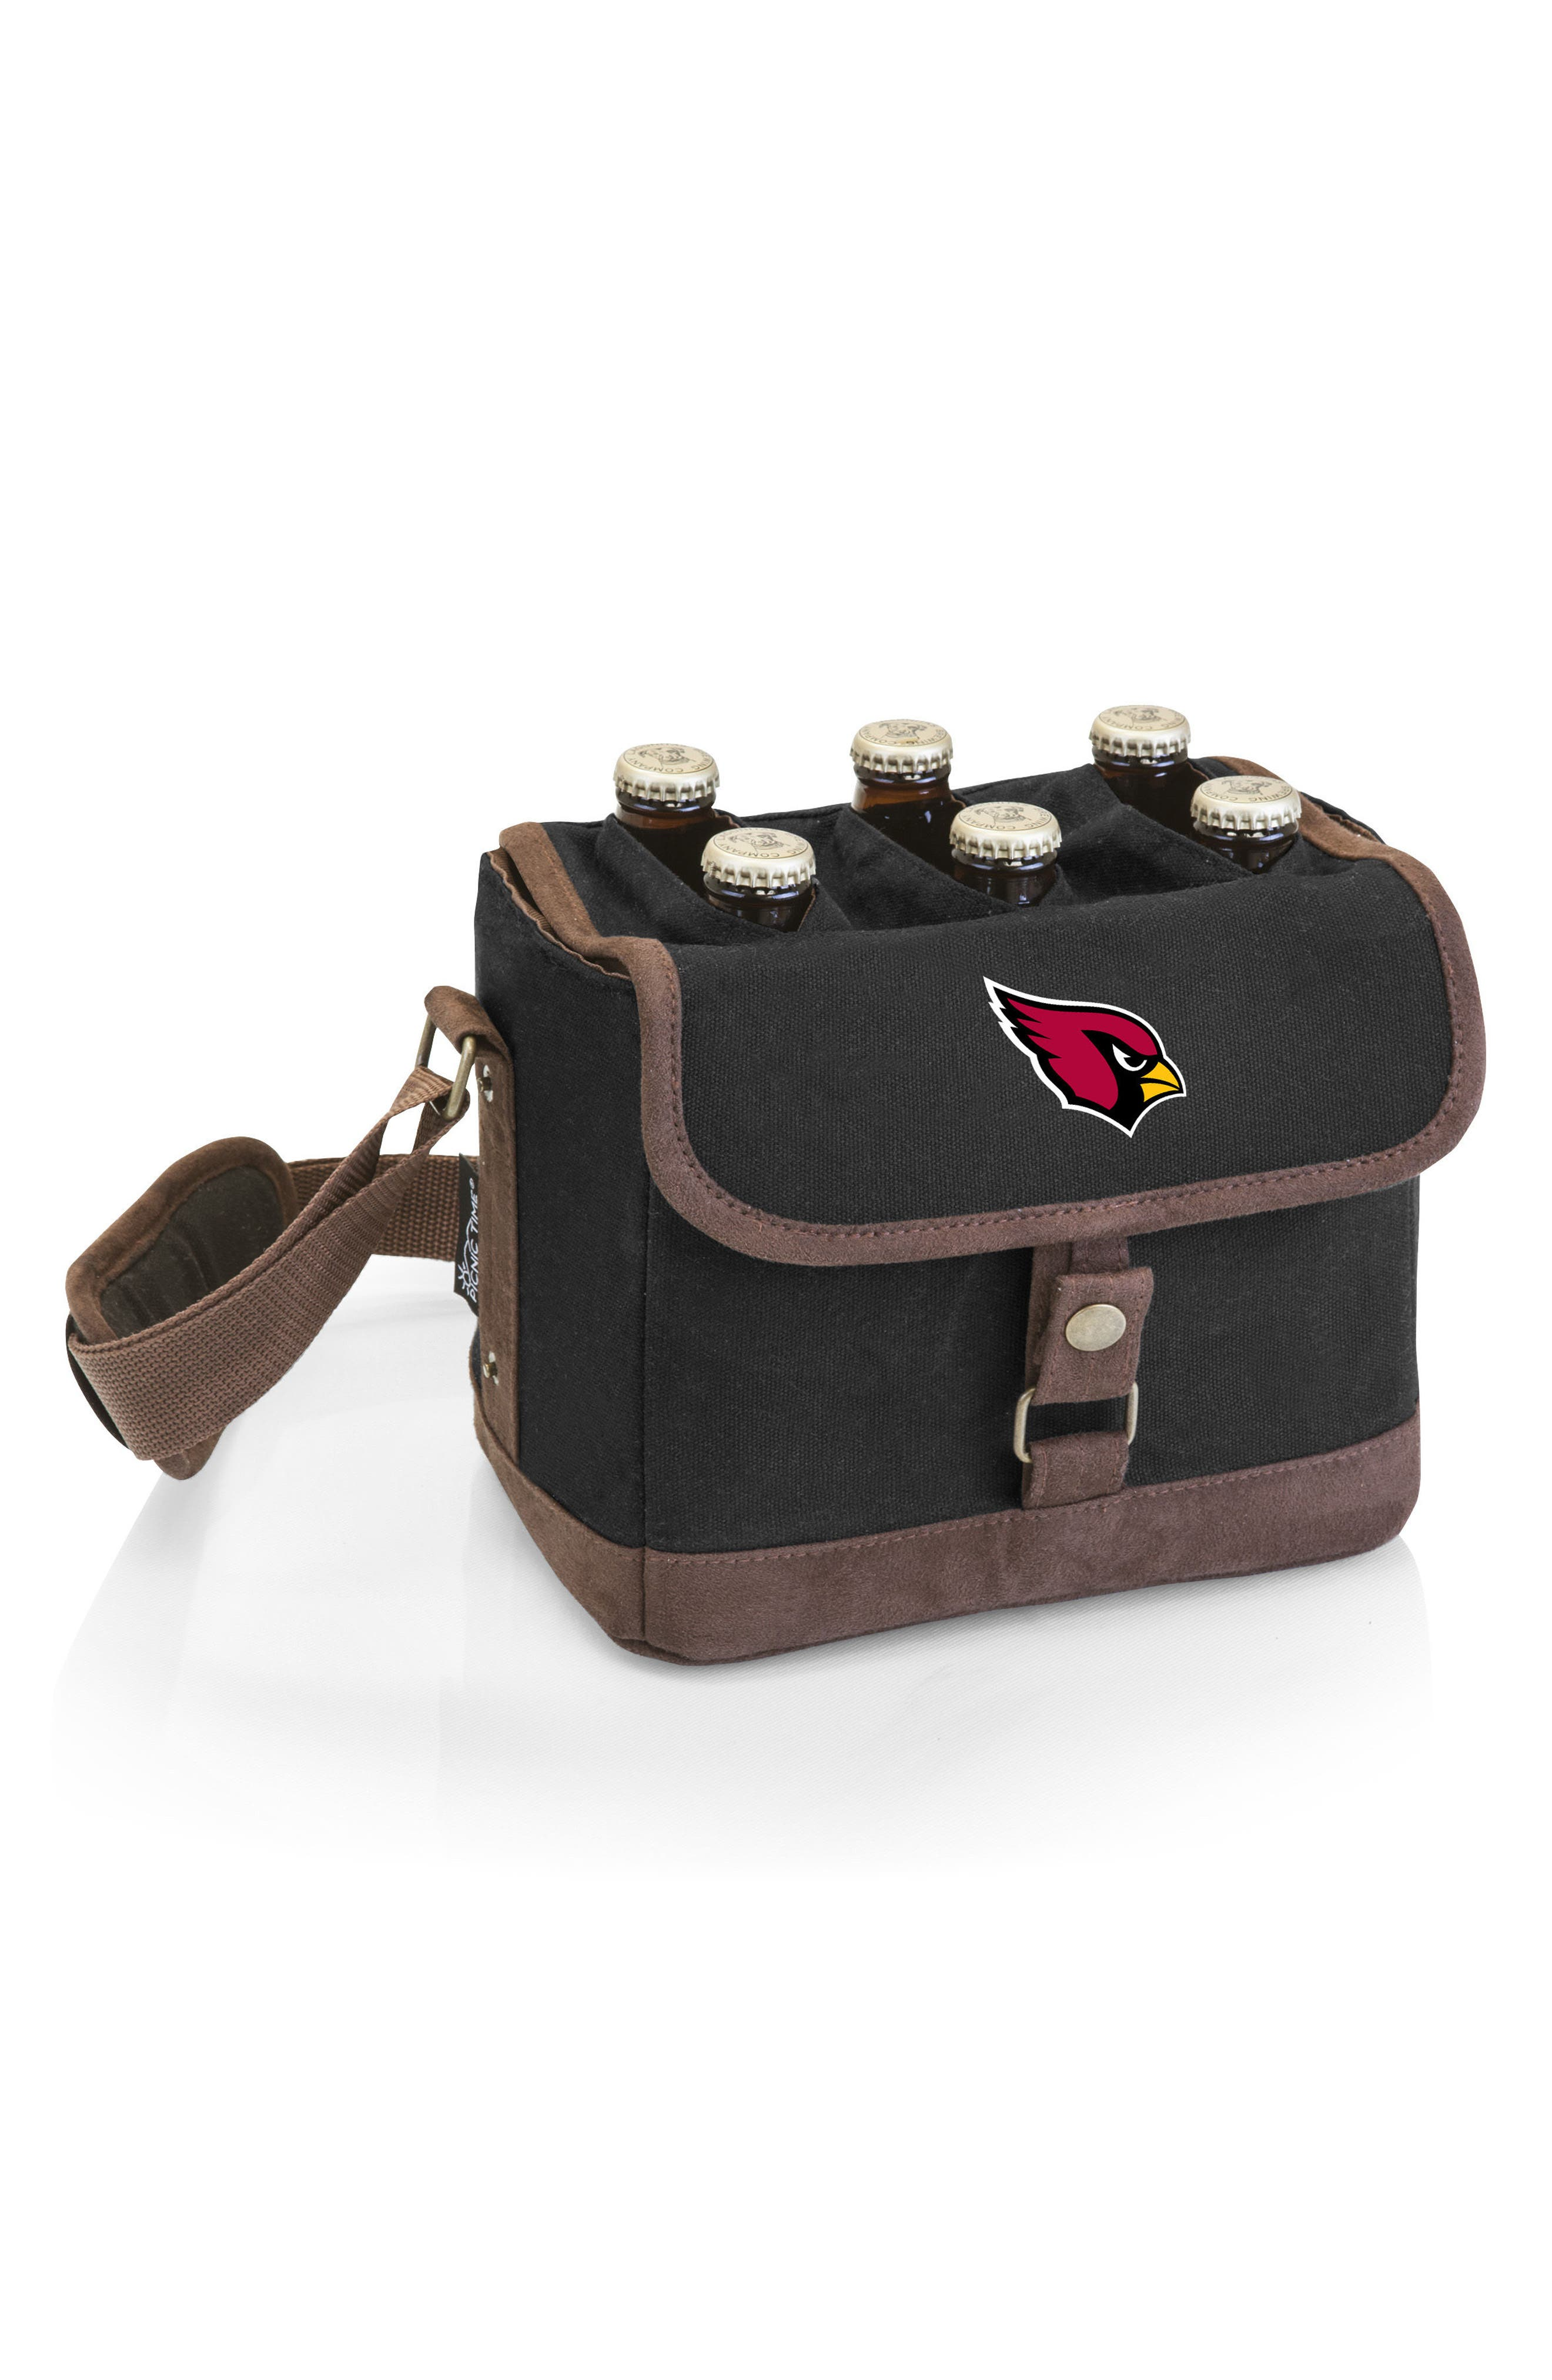 PICNIC TIME,                             NFL Team Logo Beer Caddy Cooler Tote,                             Main thumbnail 1, color,                             001